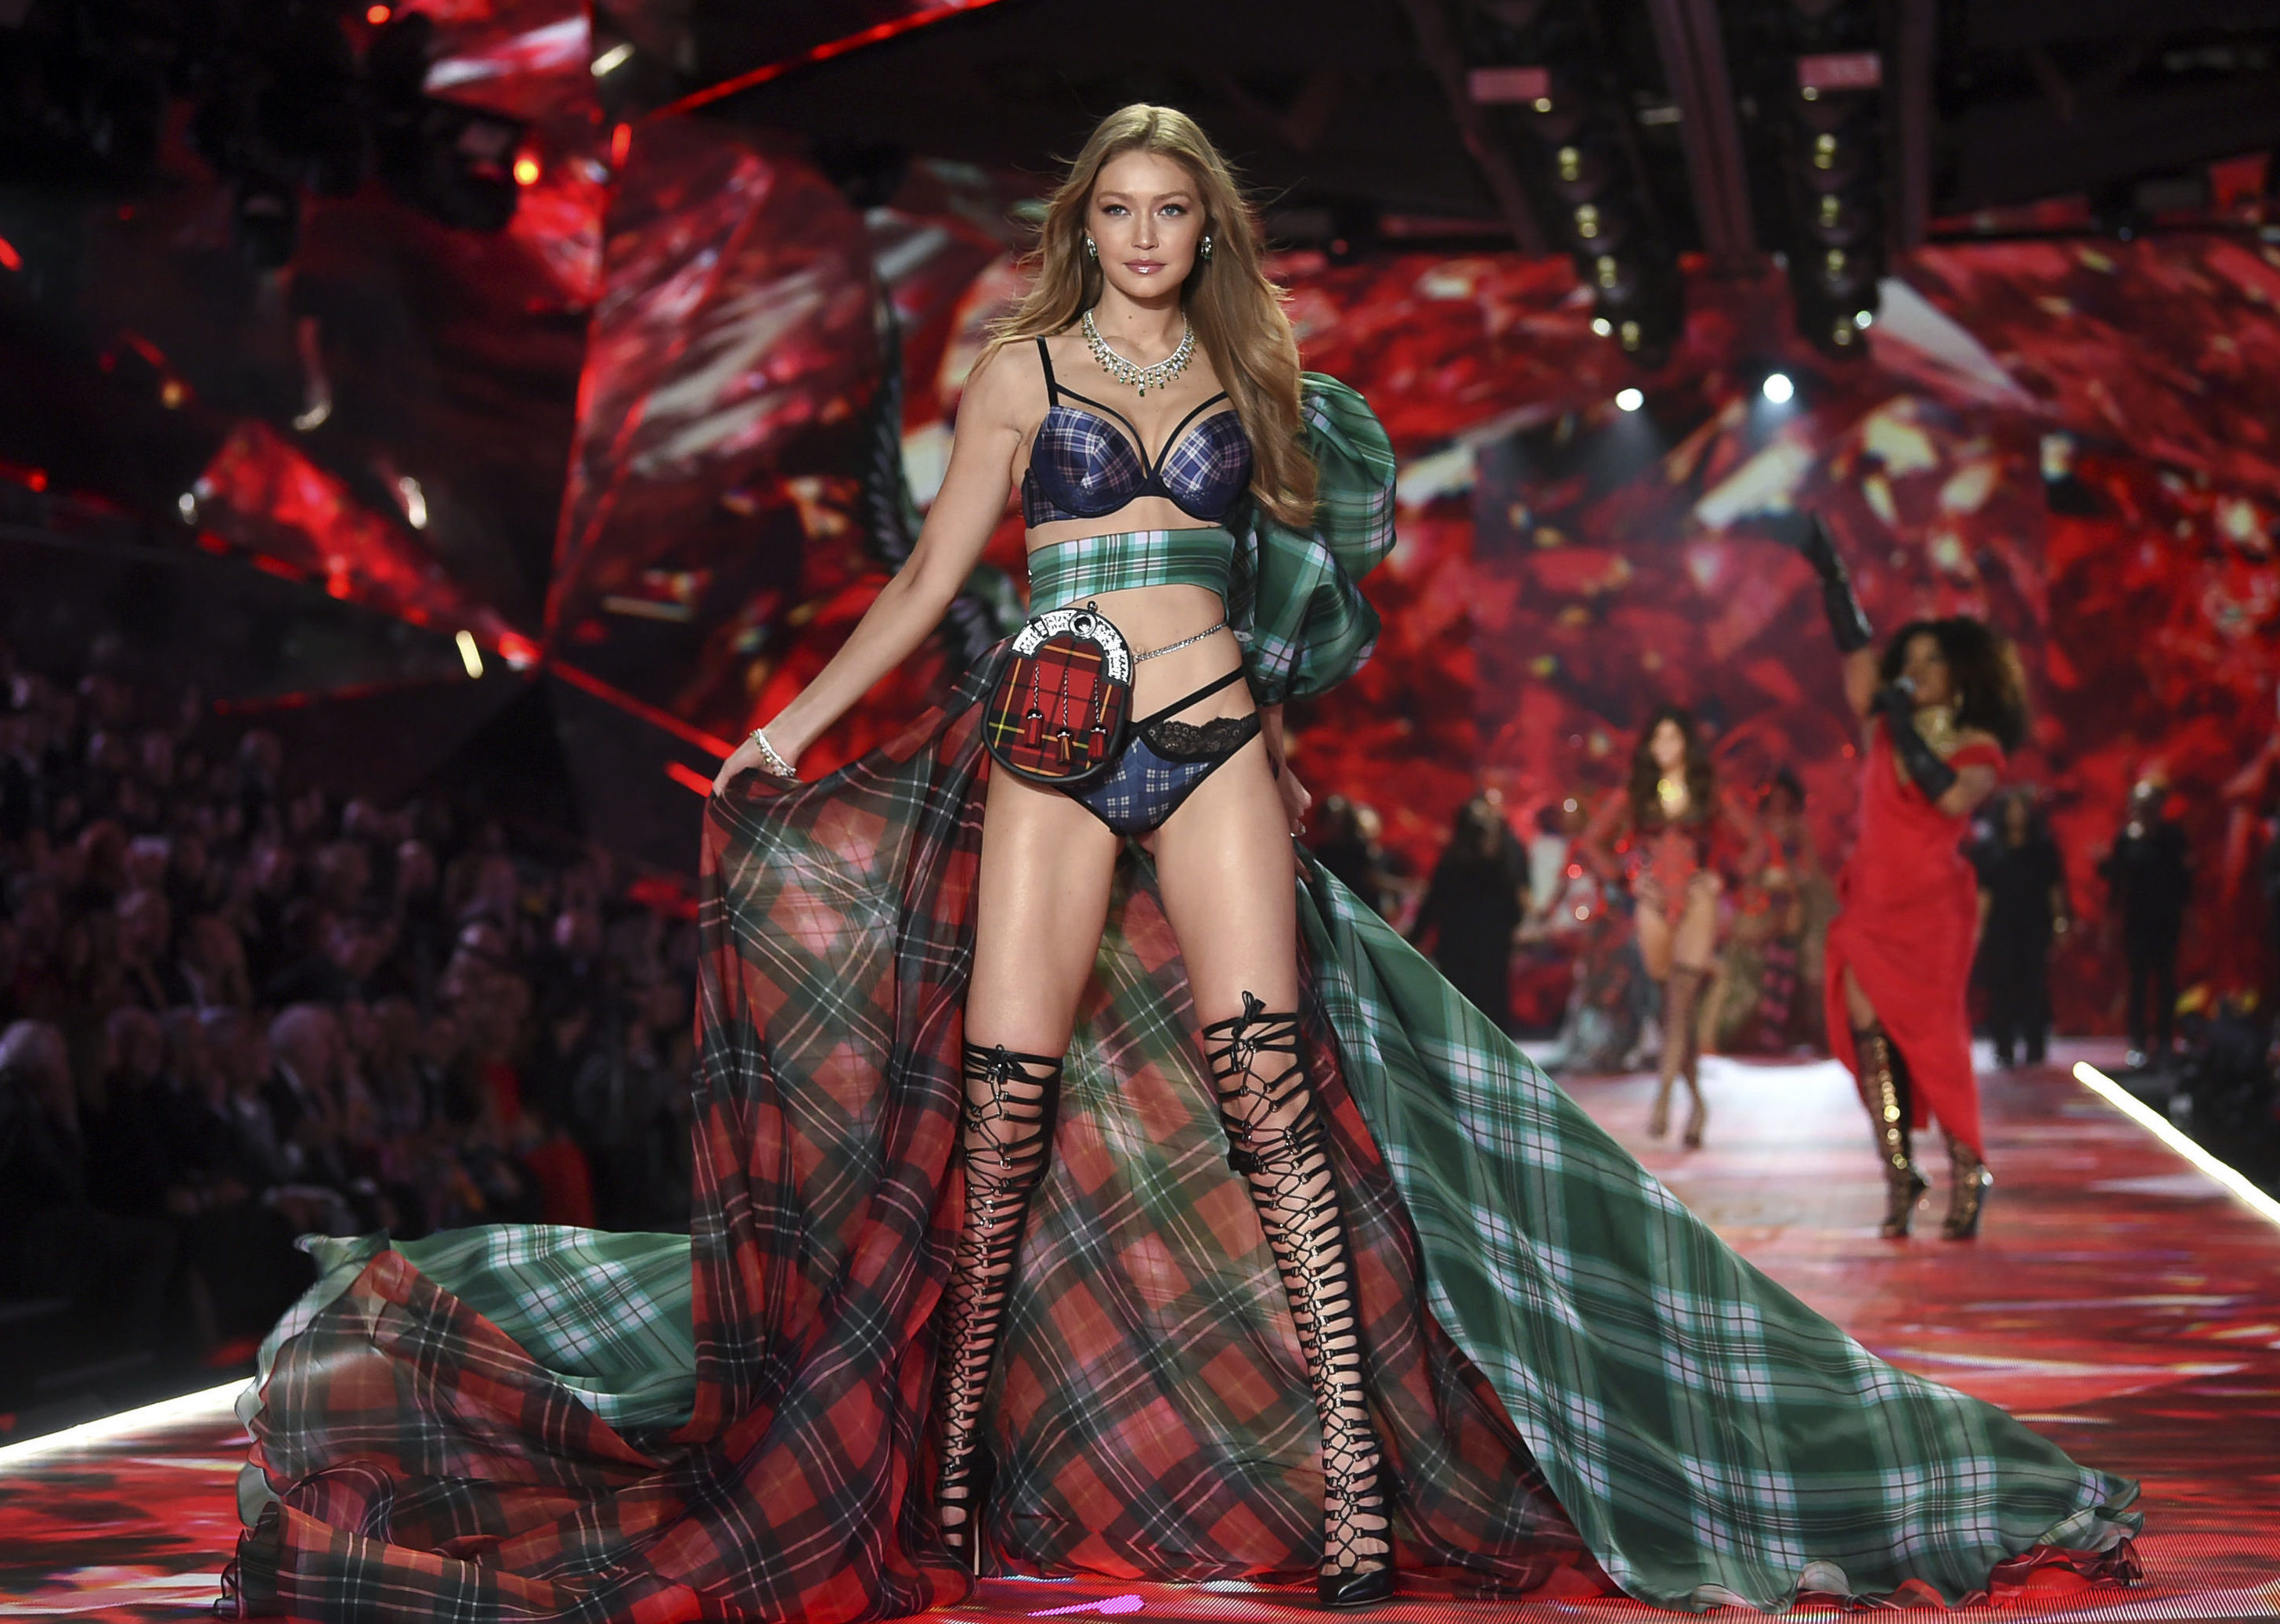 Model Gigi Hadid sporting the sporran during the 2018 Victoria's Secret fashion show.